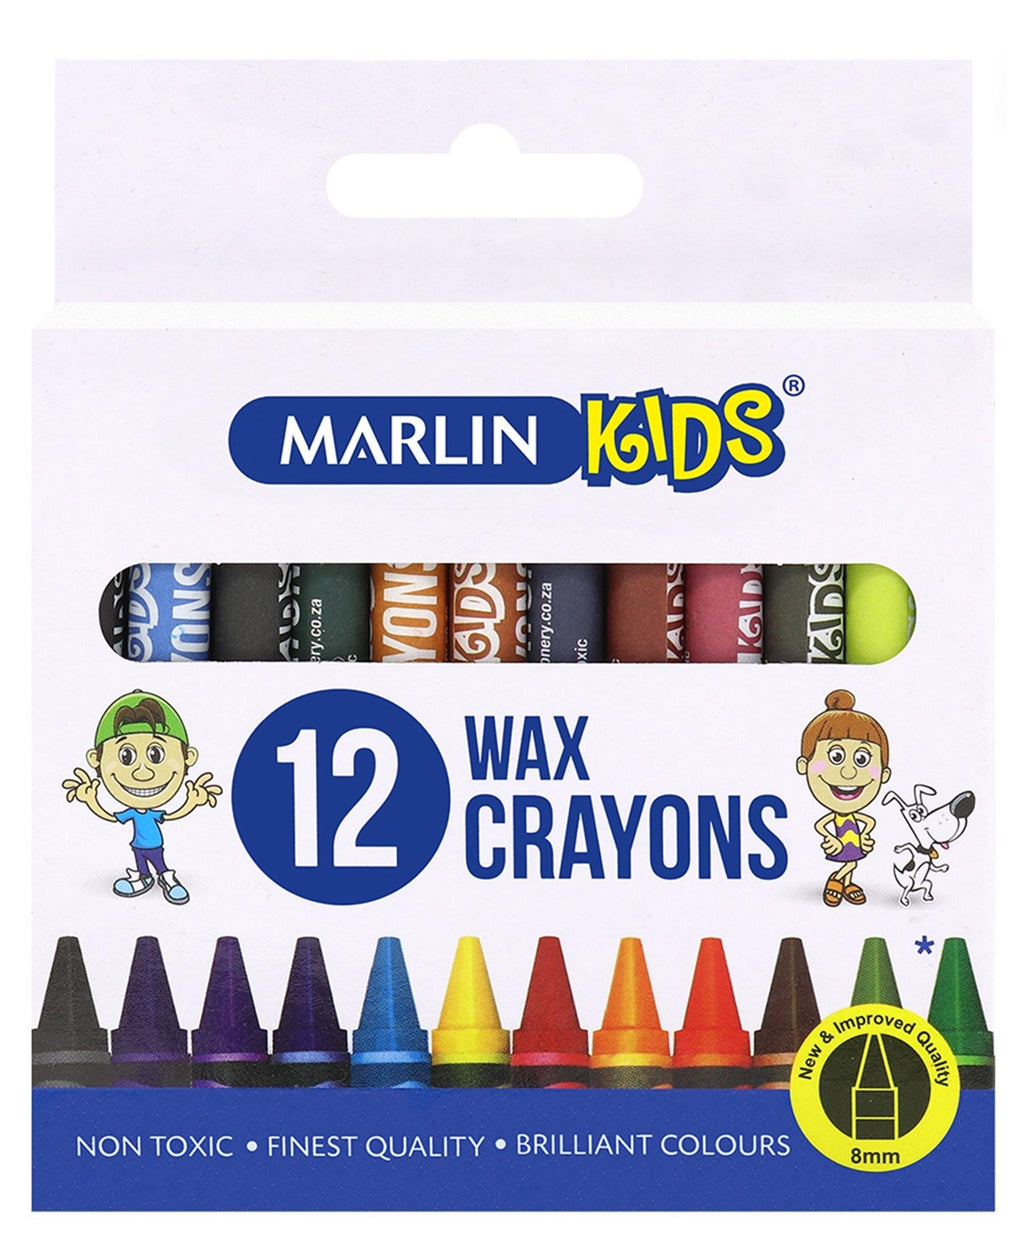 Marlin 12 Pack Wax Crayons - Multi